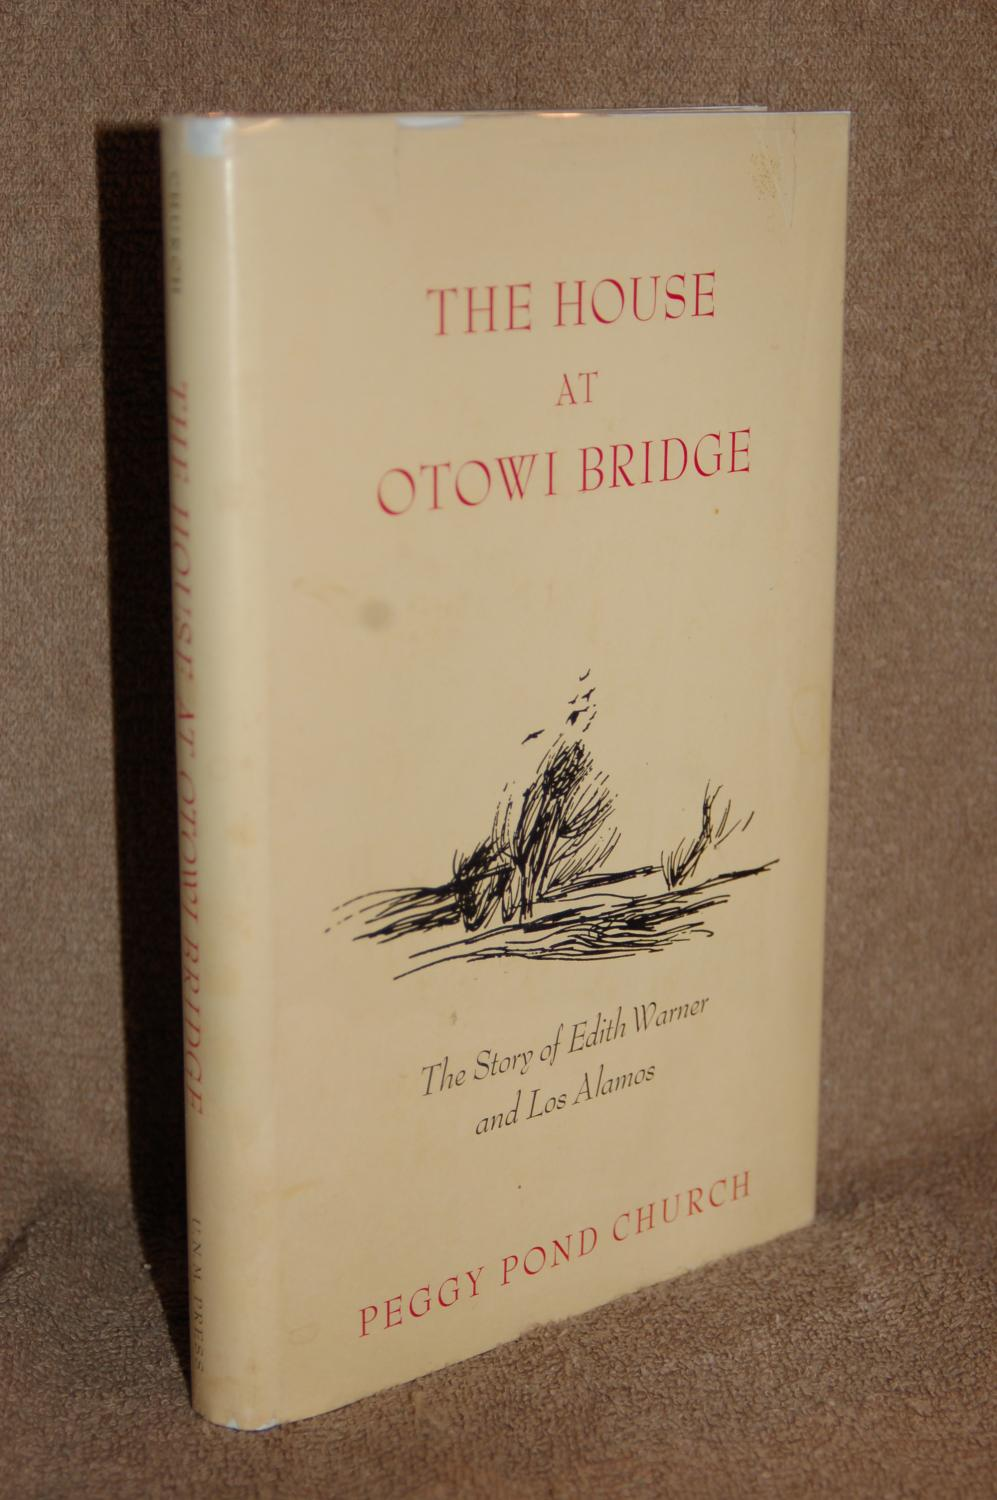 The House at Otowi Bridge; The Story of Edith Warner and Los Alamos: Peggy Pond Church